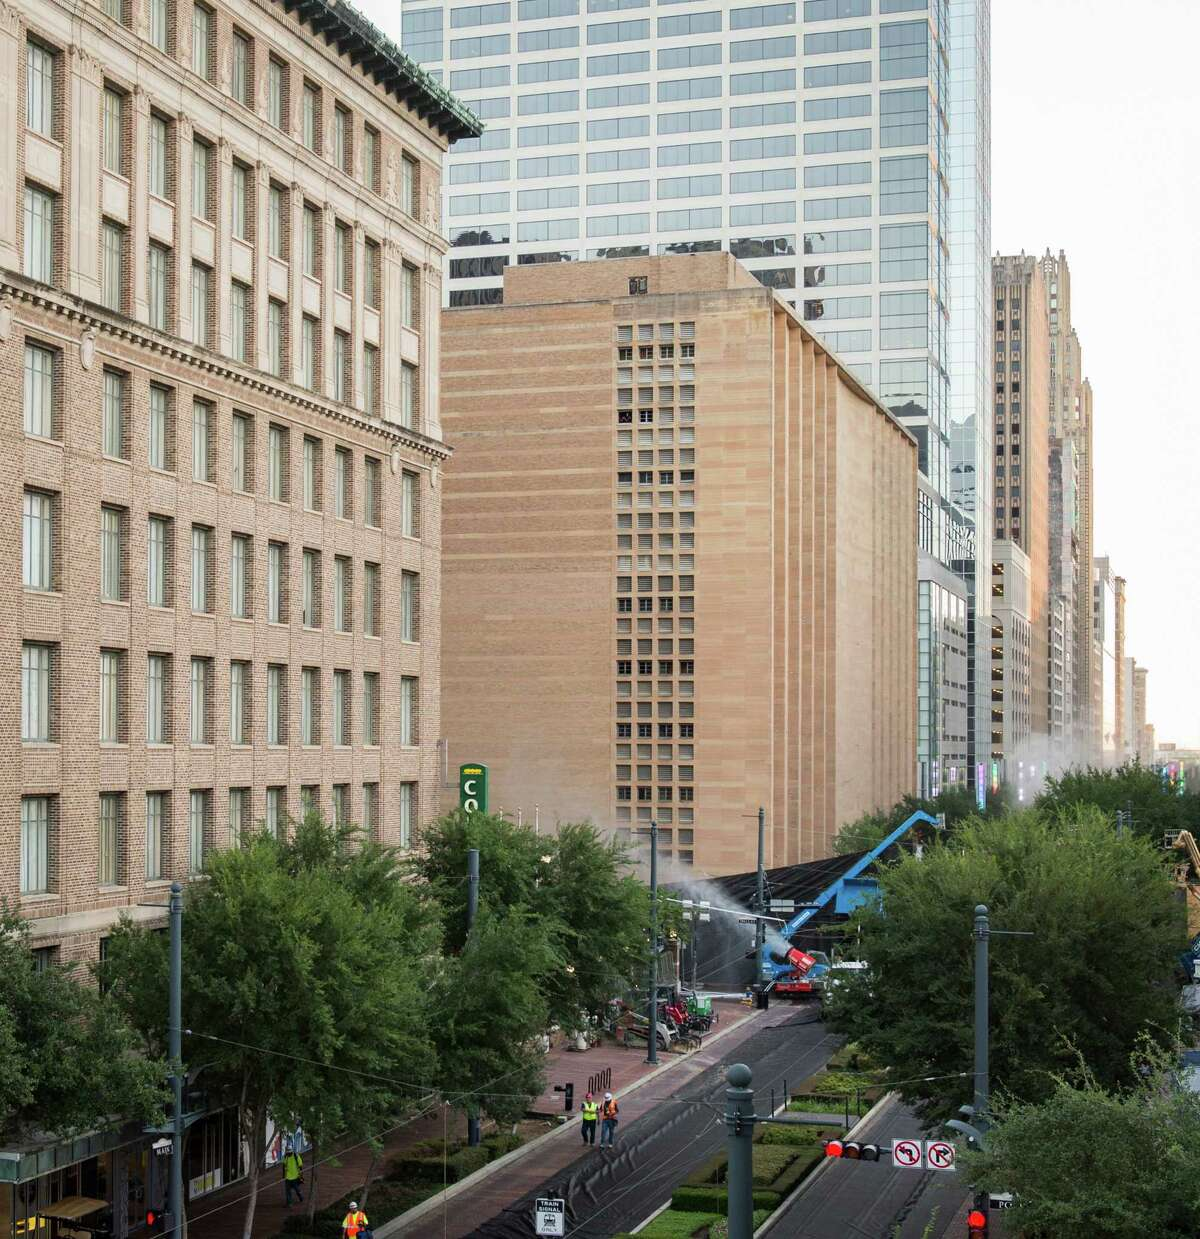 A series of explosive charges brings down the landmark former Macy's department store building in downtown Houston on Sunday, Sept. 22, 2013.